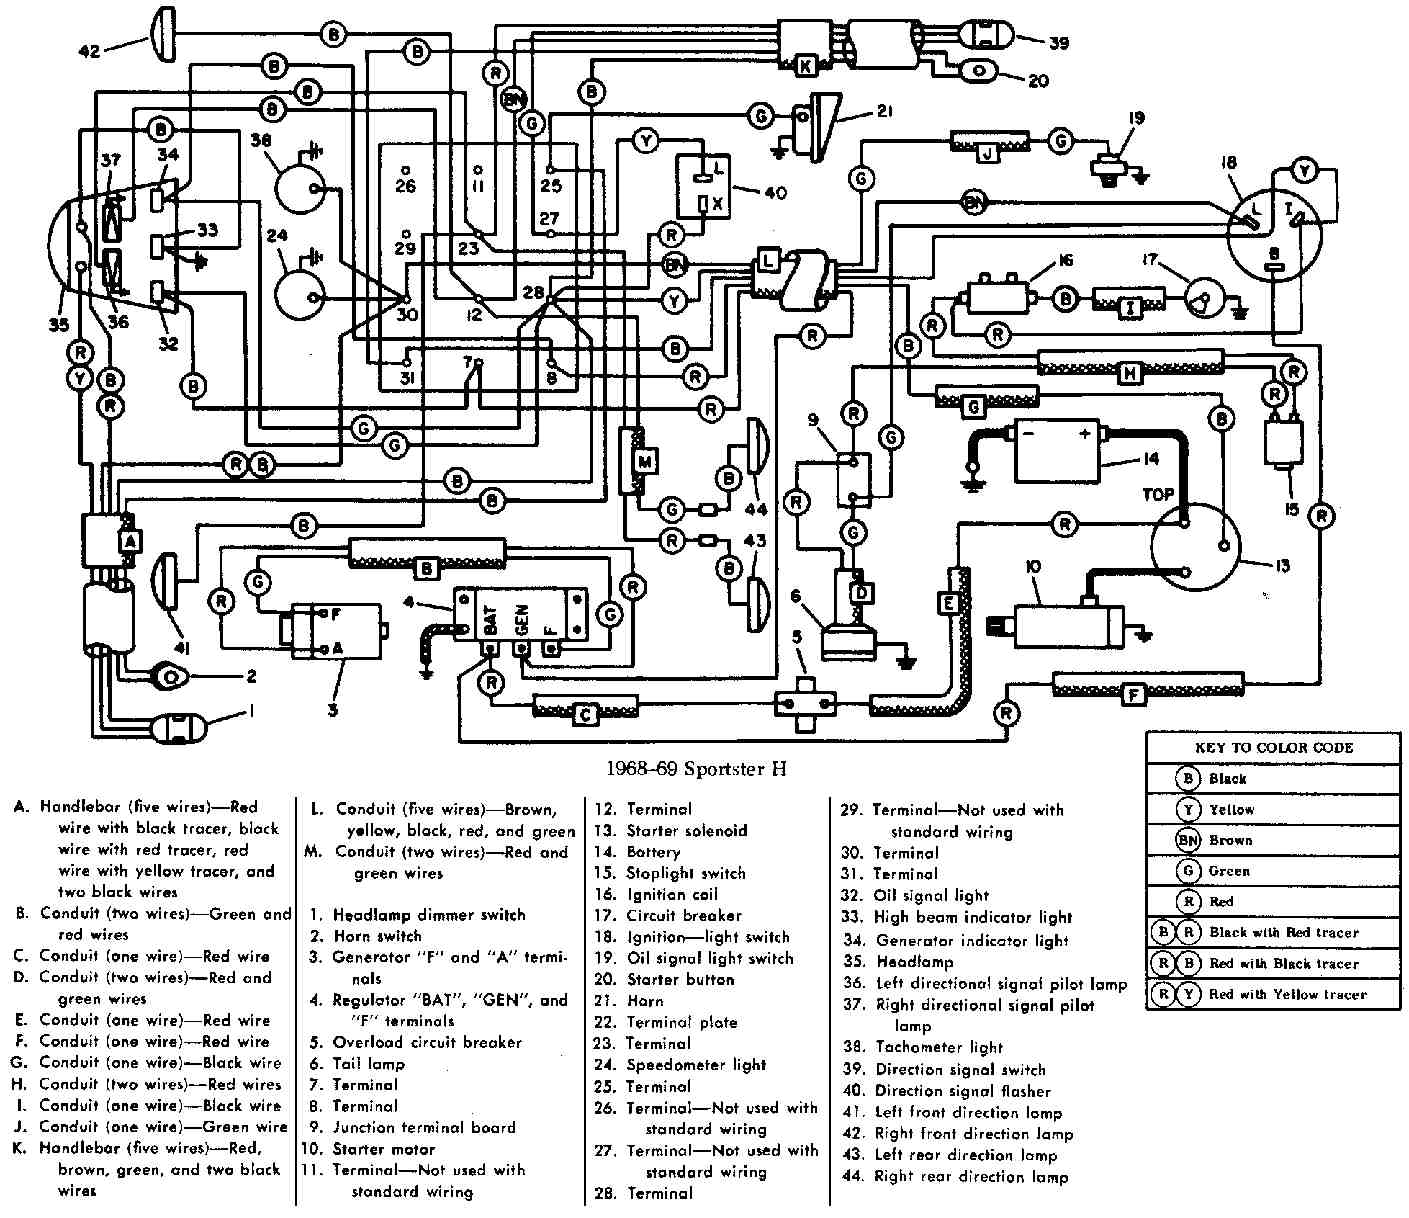 93 Sportster Wiring Harnes – Wallpaper on transportation diagram, harley-davidson street glide wiring diagram, email diagram, harley-davidson ignition wiring diagram, 2006 harley-davidson wiring diagram, harley handlebar wiring harness diagram, harley-davidson turn signal wiring diagram, harley engine diagram, columbia par car wiring diagram, chopper wiring diagram, 2007 harley-davidson wiring diagram, harley davidson exhaust diagram, light diagram, marketing diagram, restaurant diagram, harley sportster wiring diagram, plan diagram, simple harley wiring diagram, stage directions diagram, 2000 harley wiring diagram,